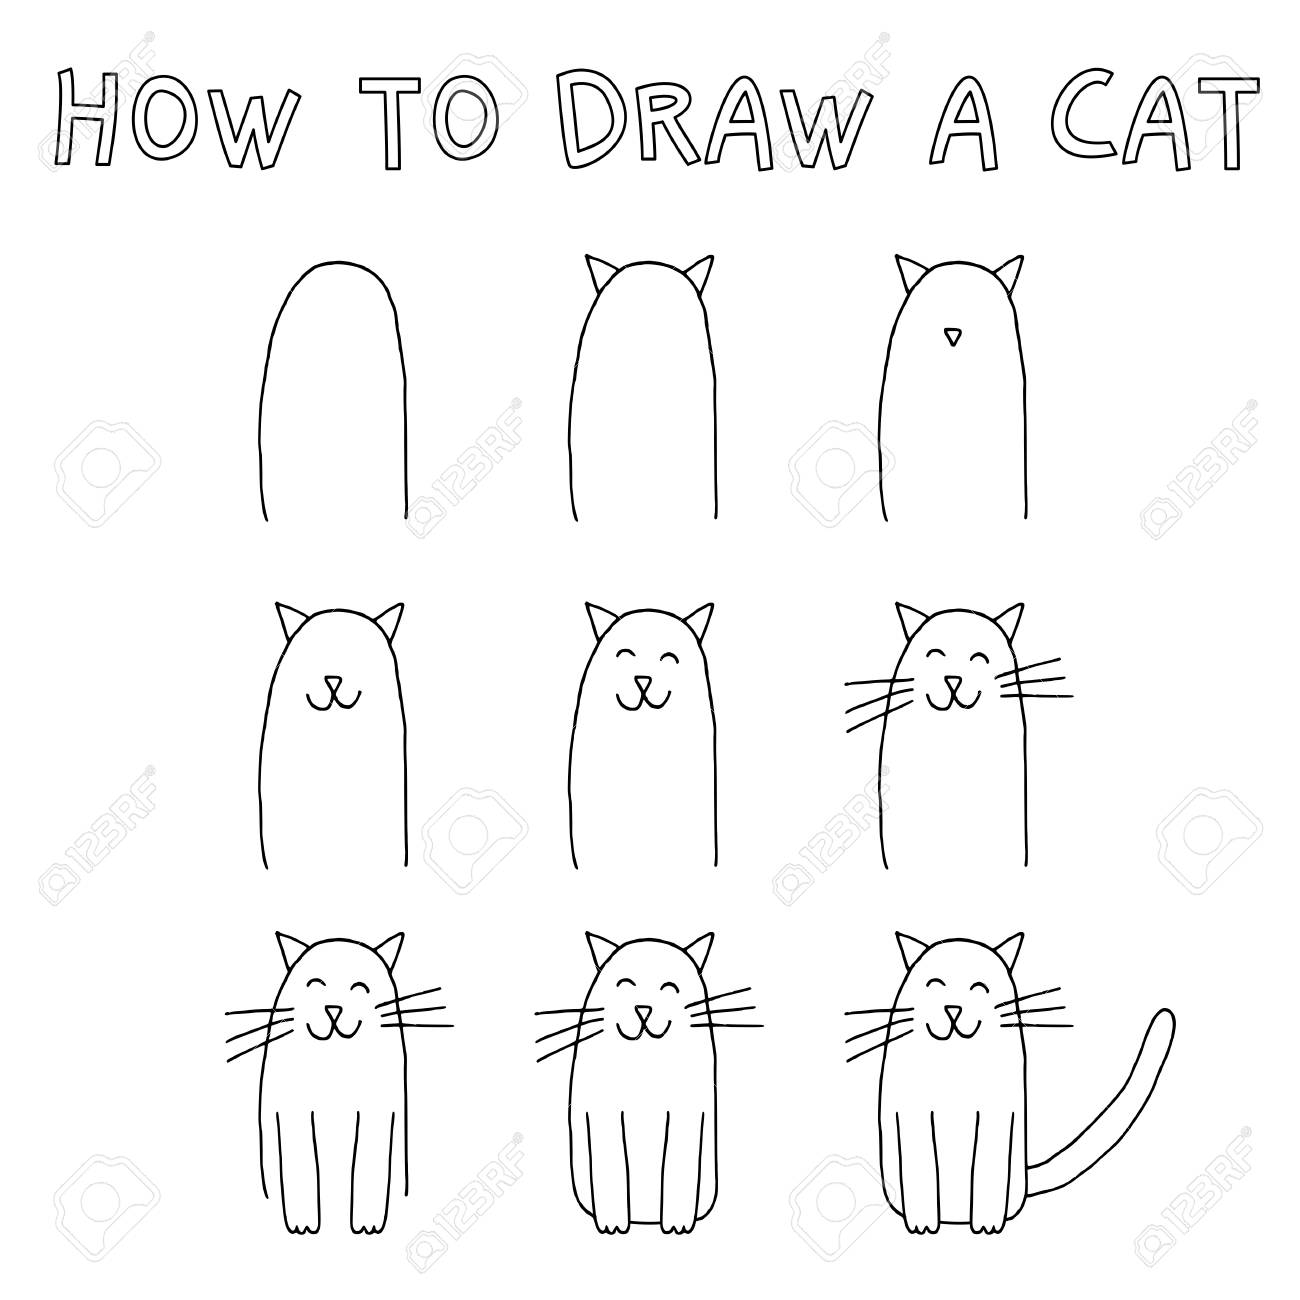 How to draw a cat step by step. - 88393489